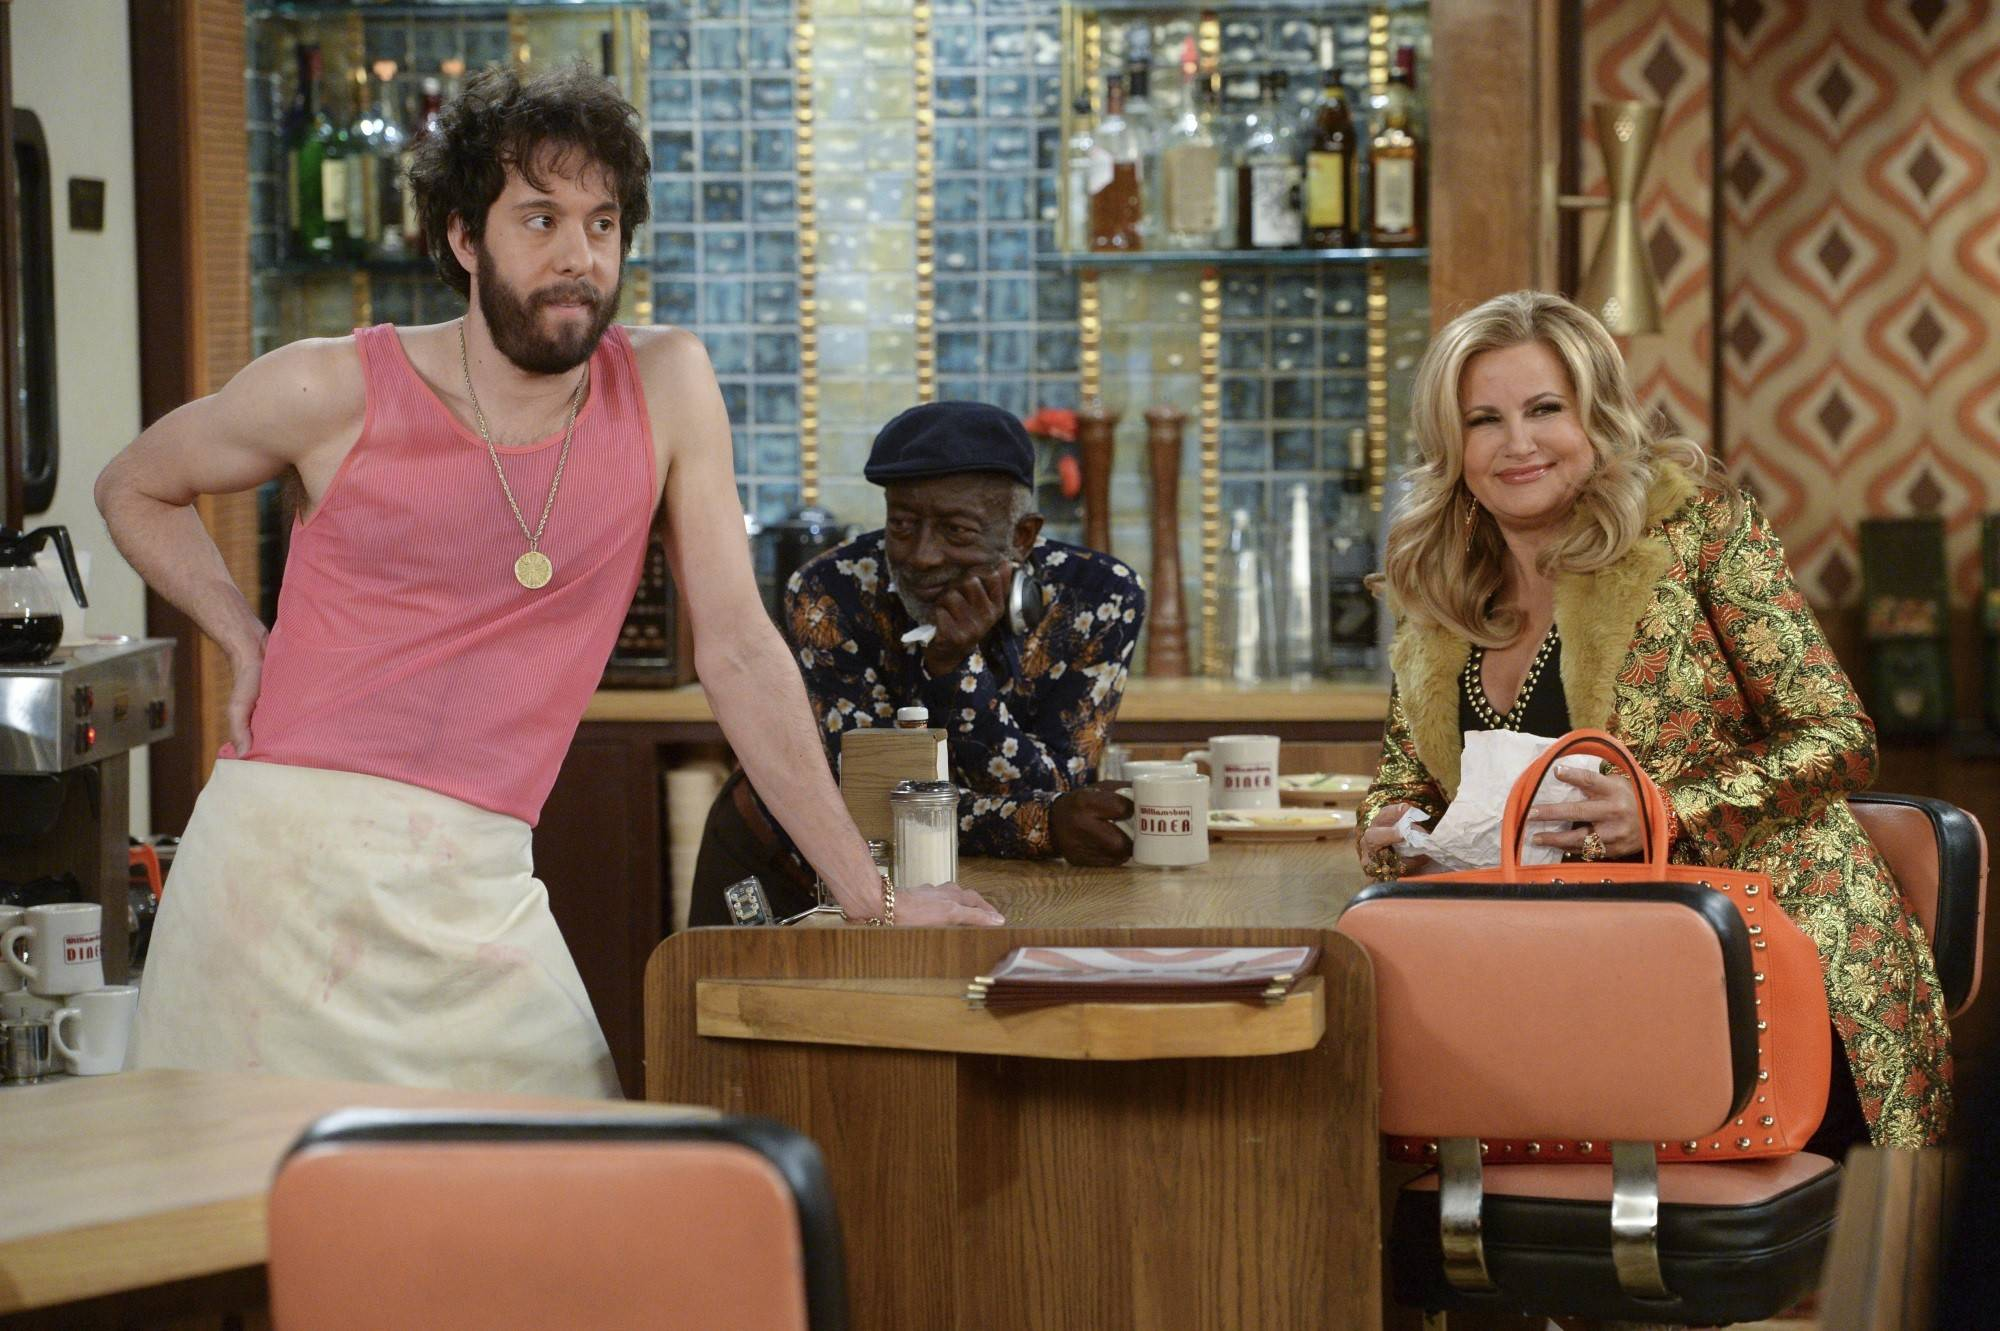 '2 Broke Girls' actor learned accent in suburbs